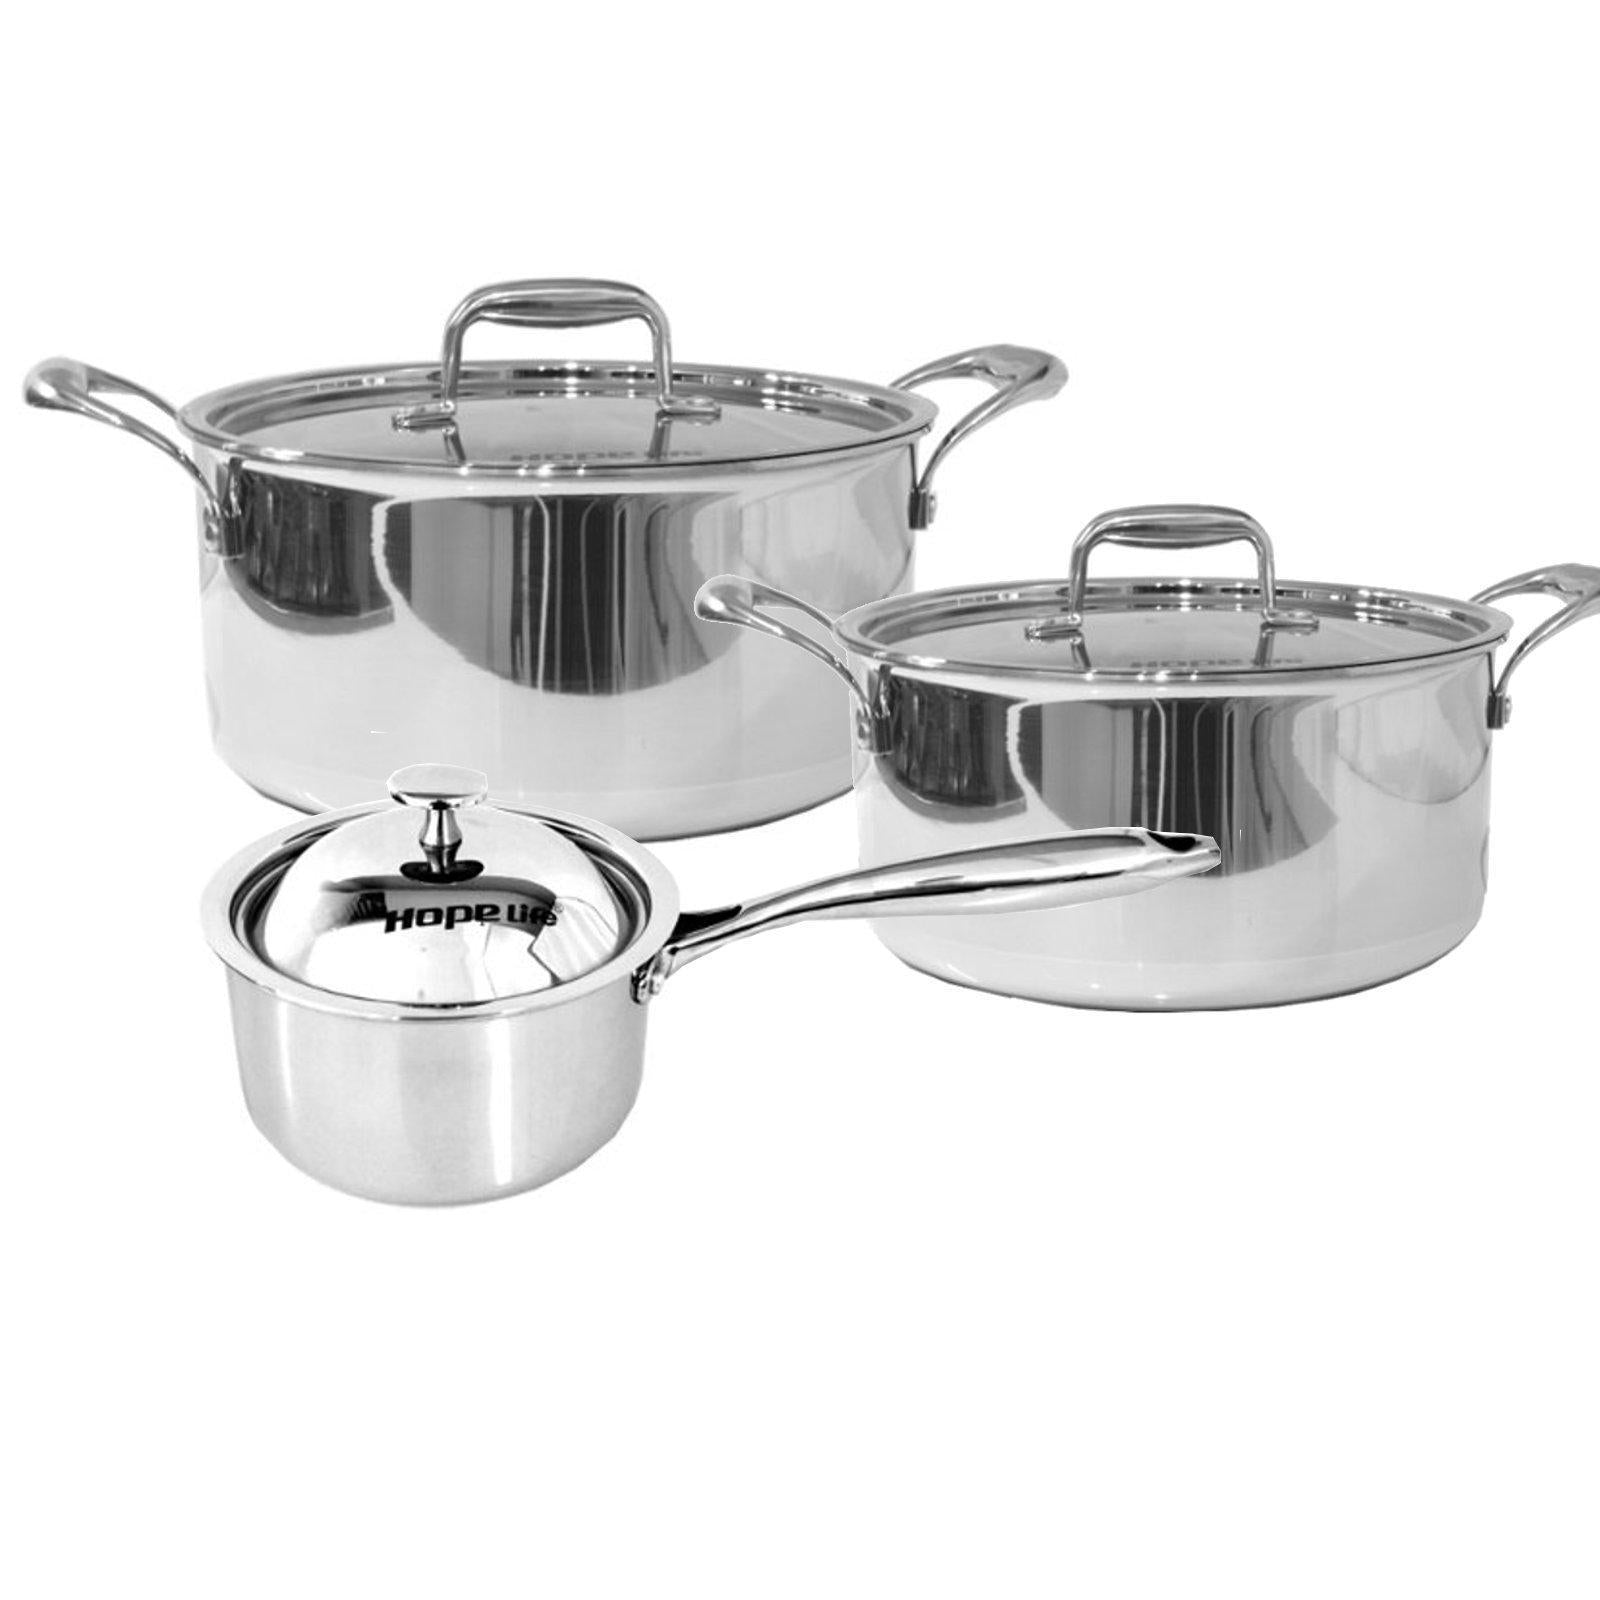 3 Pcs Stainless Steel Tri-Ply Casserole & Saucepan Set-Stainless Steel Cookware Set-Chef's Quality Cookware